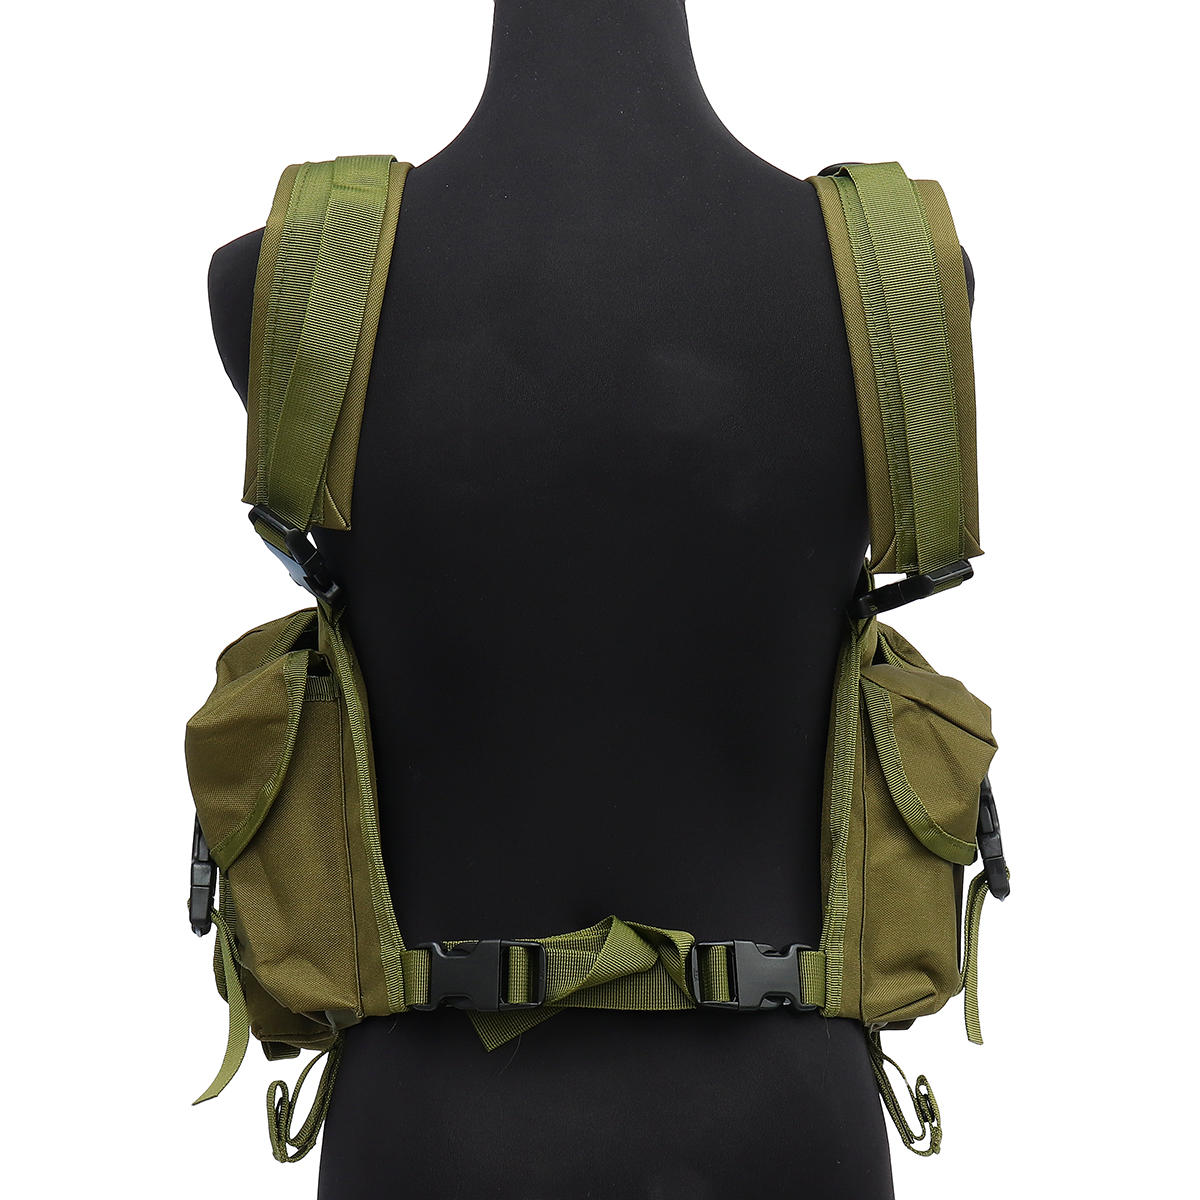 Chaleco táctico unisex al aire libre Combat Game Training Storage Carrier Belly Pocket Vest - 10